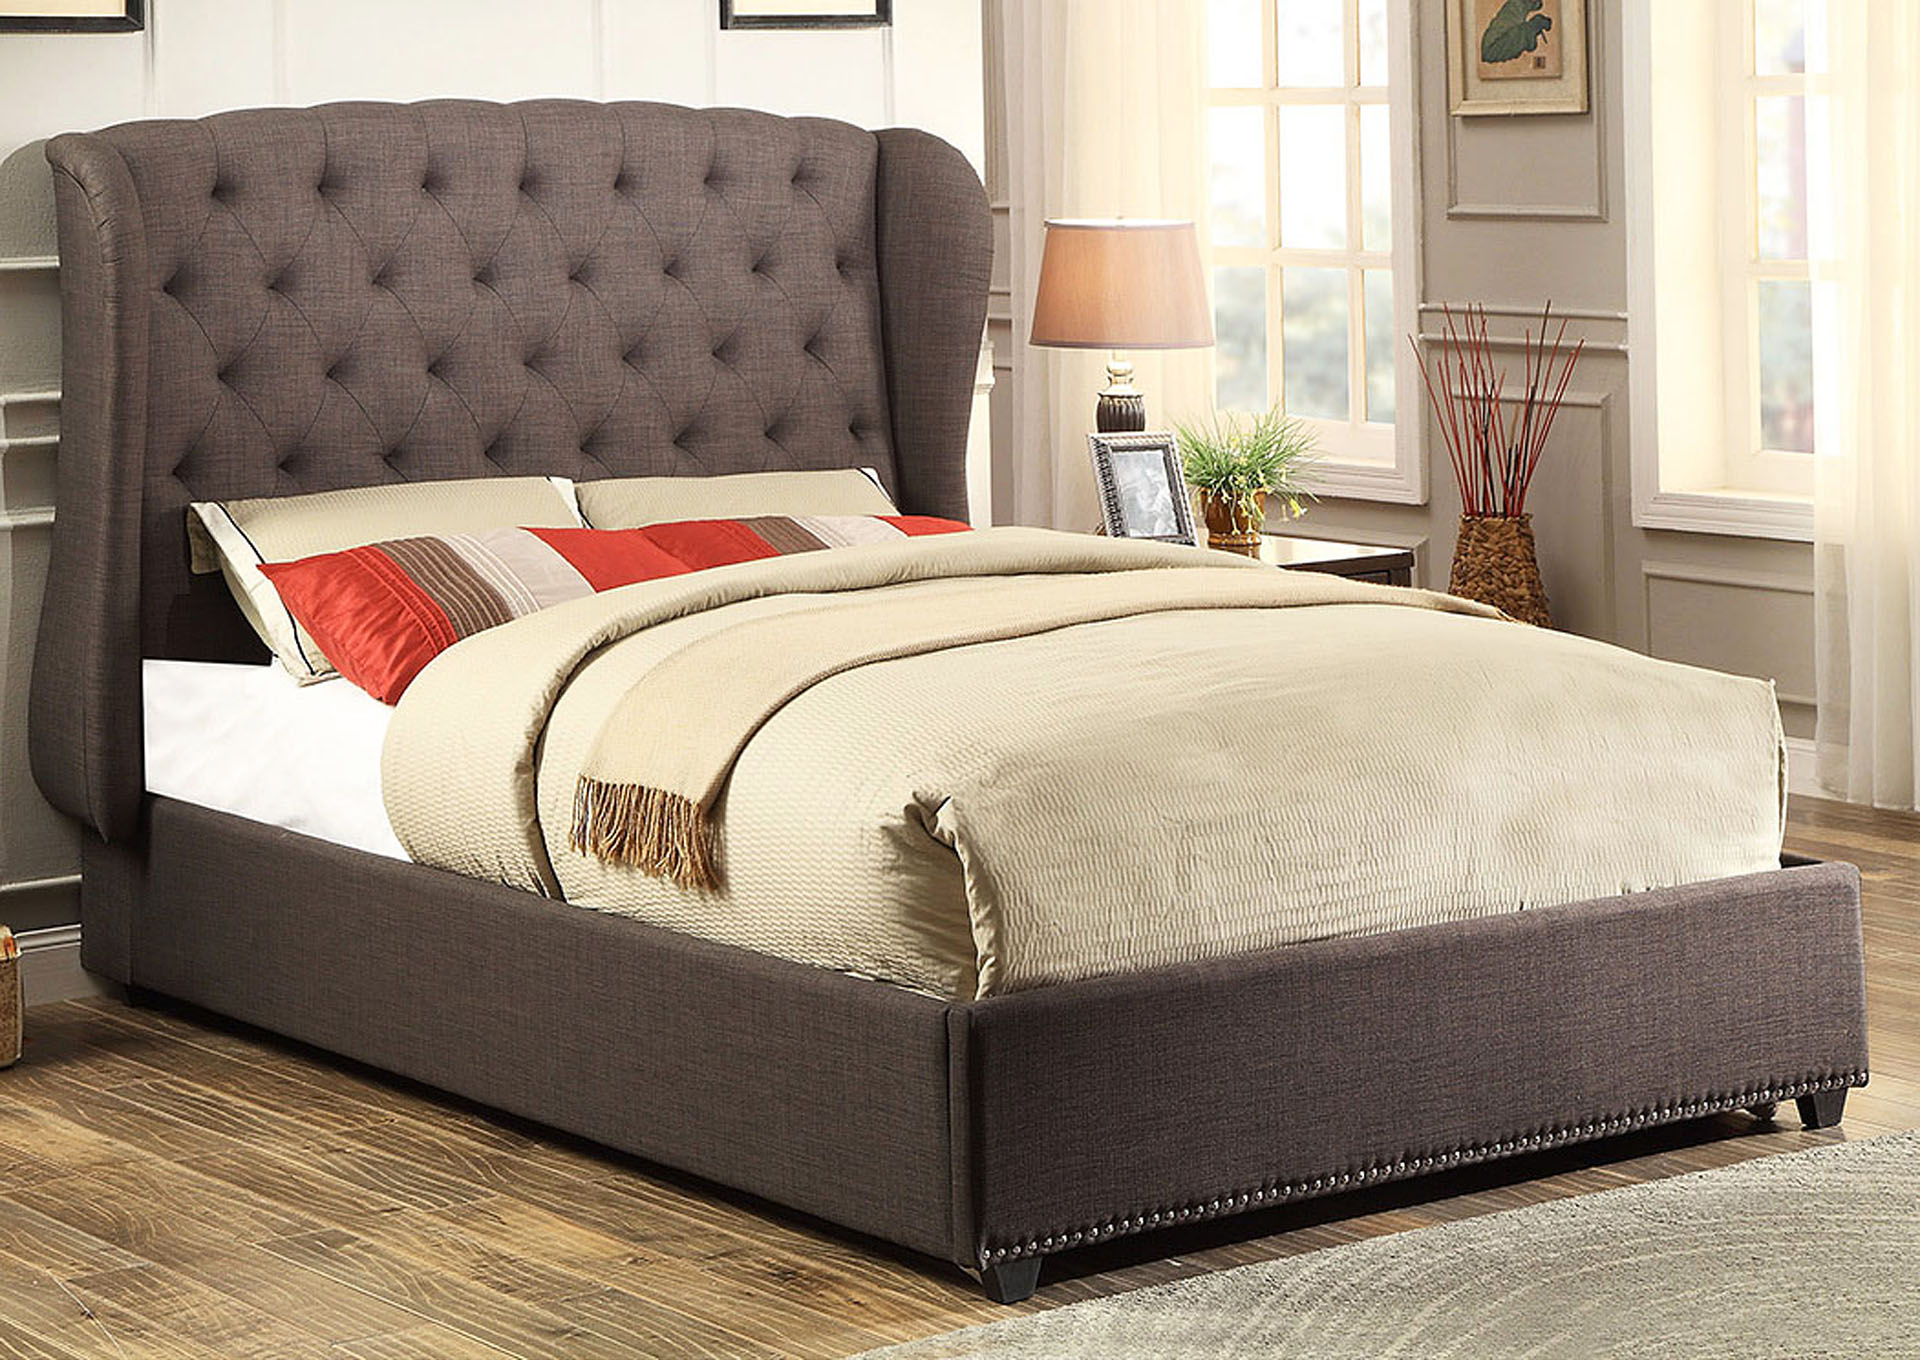 Chardon Dark Gray Upholstered Full Bed,Homelegance